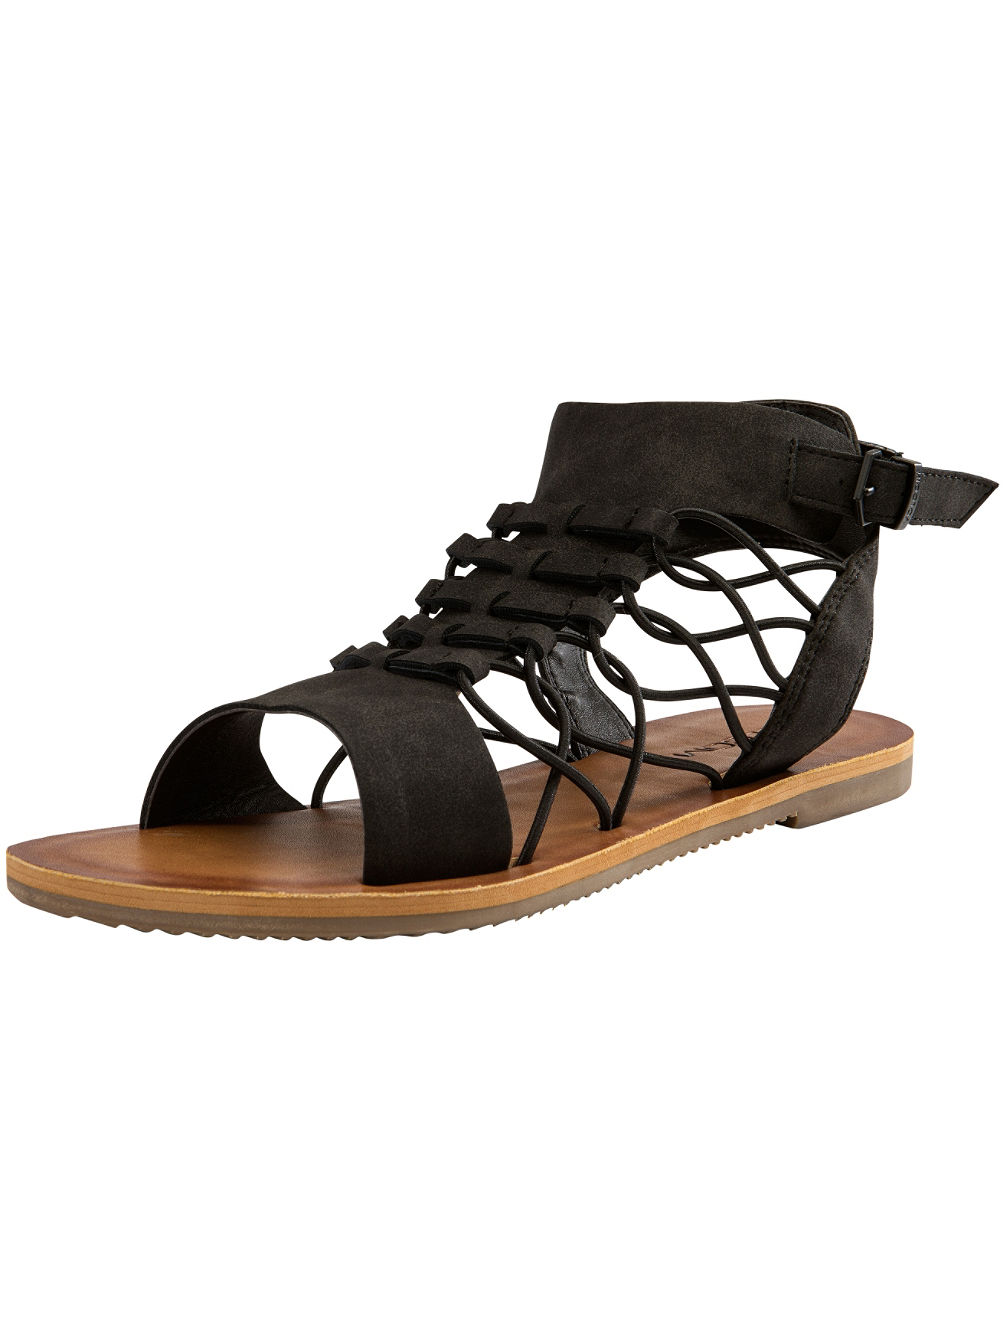 Caged Bird Sandals Women